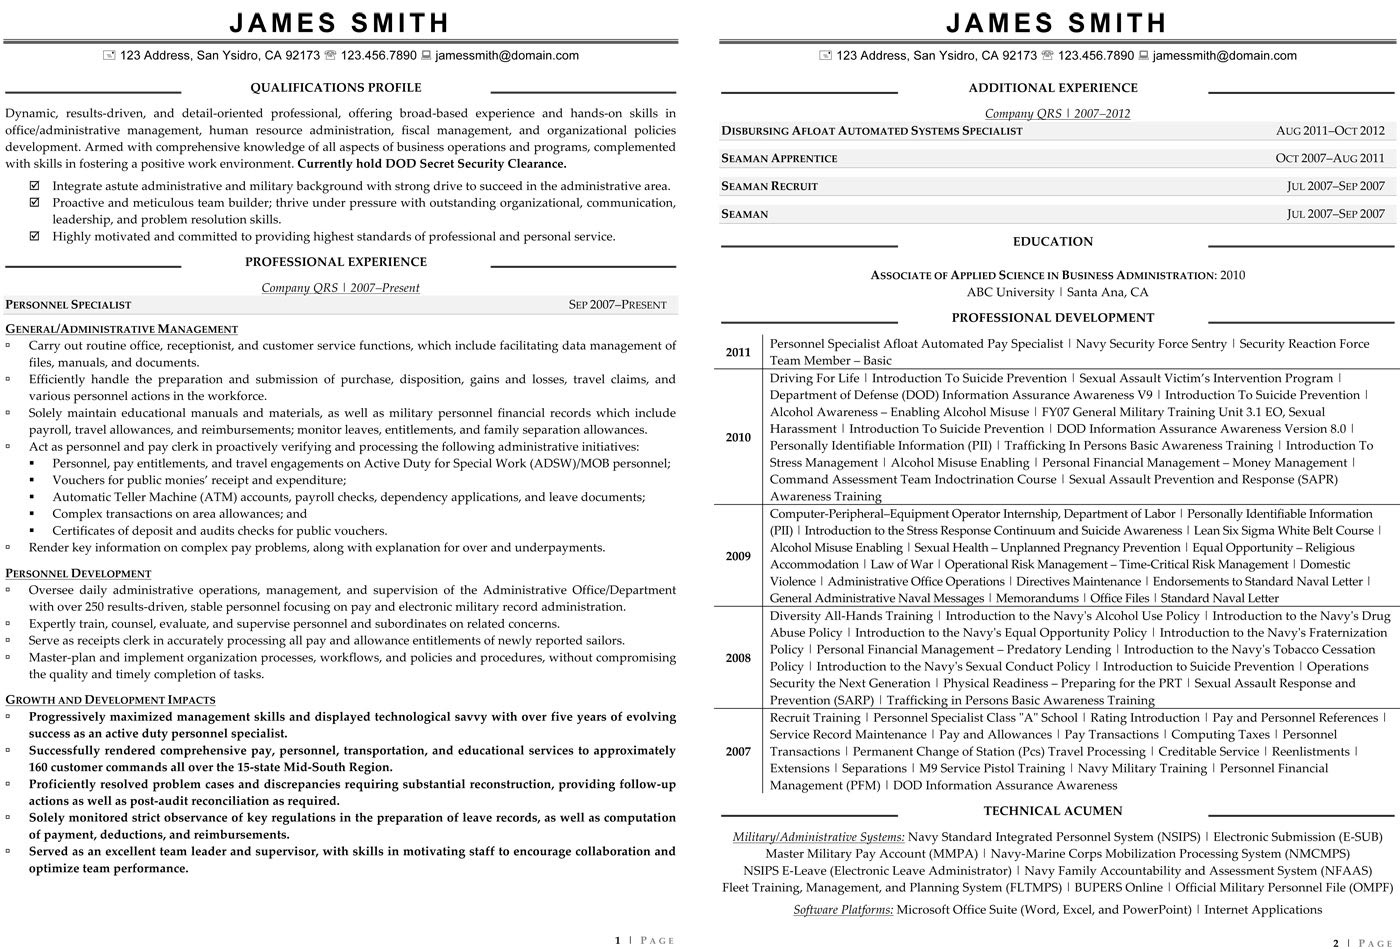 Human Resource Generalist Resume  Entry Level Resume Examples